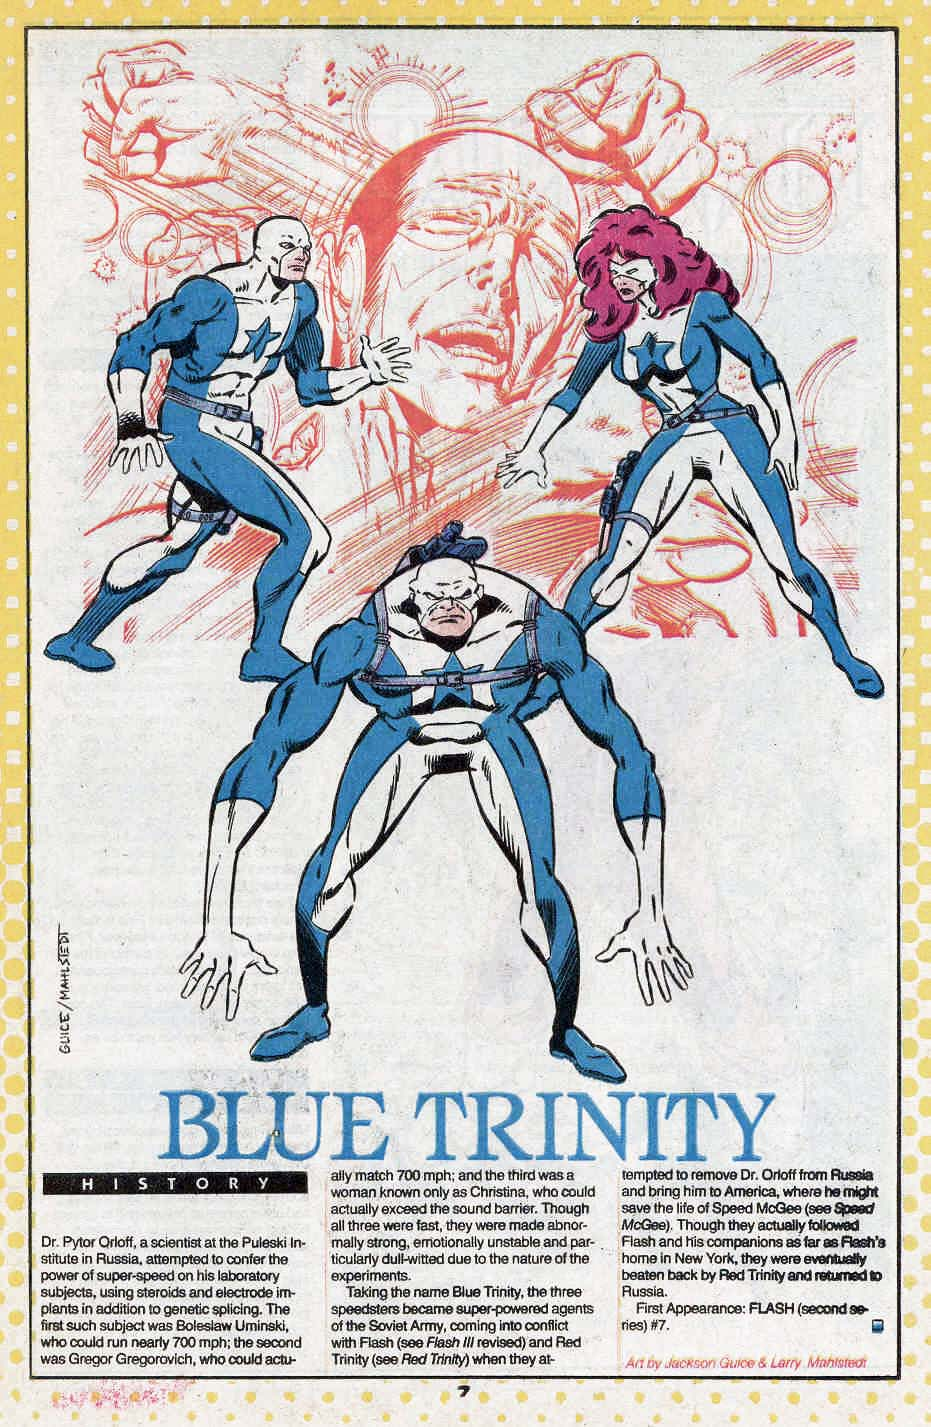 Blue Trinity by Jackson Guice and Larry Mahlstedt